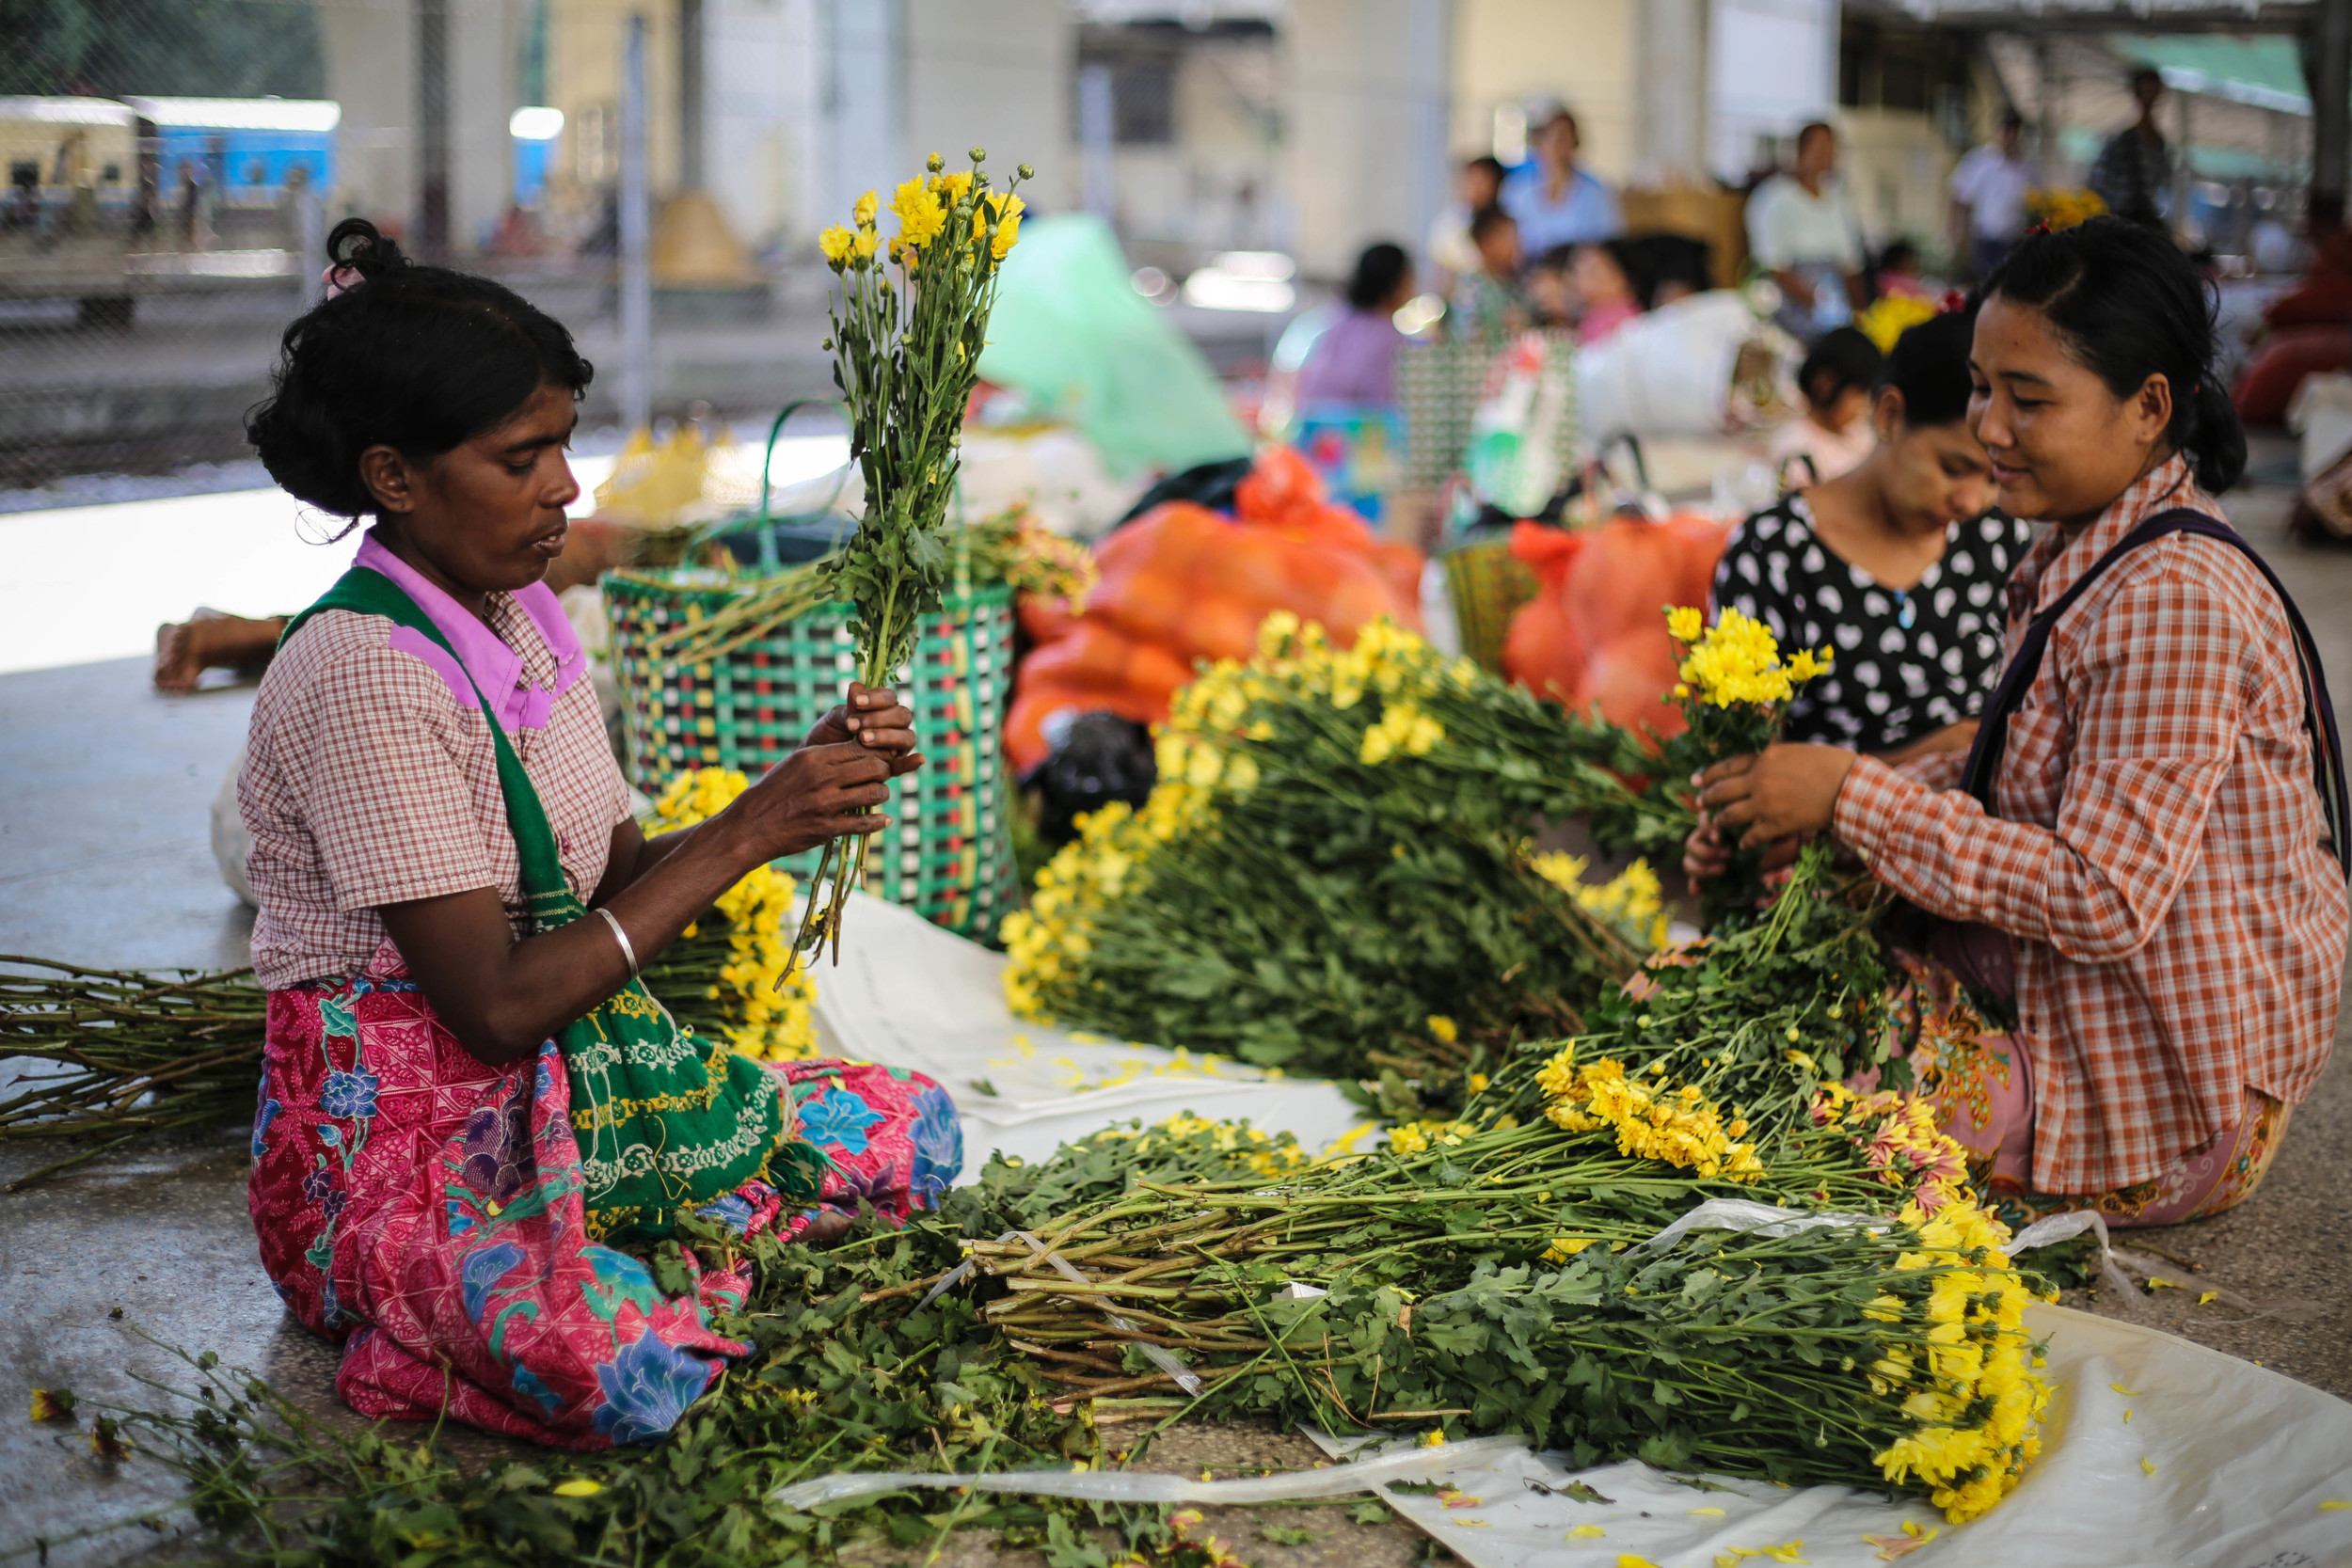 1. The station's ill­-equipped security guards, police, and workers often also live at the station as part of their benefits./ 2. Women sort through fresh flowers that had just arrived at the station in the early morning.